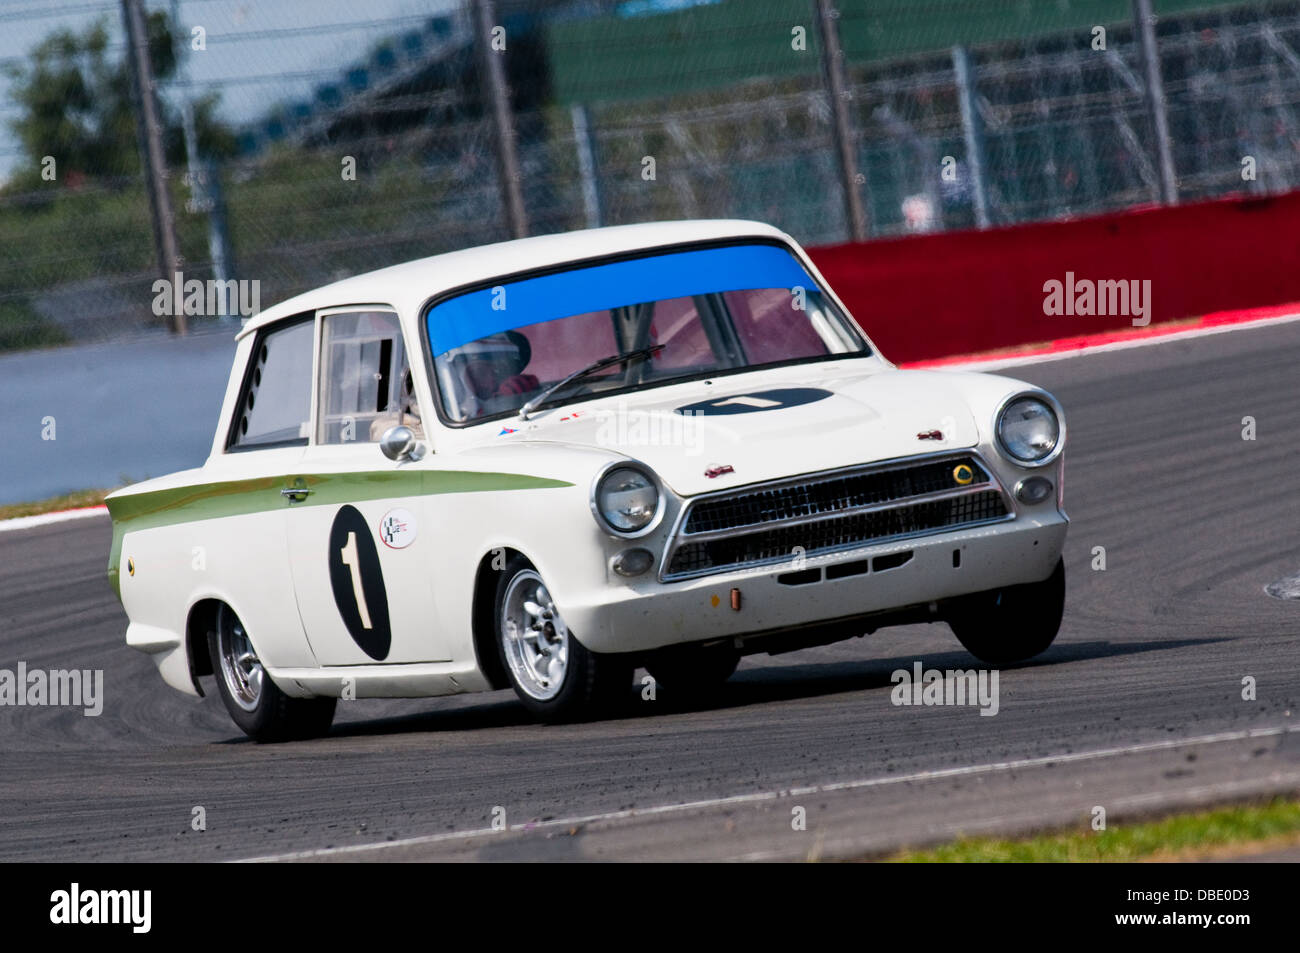 leo voyazides simon hadfield in a ford lotus cortina during the 2013 silverstone classic under